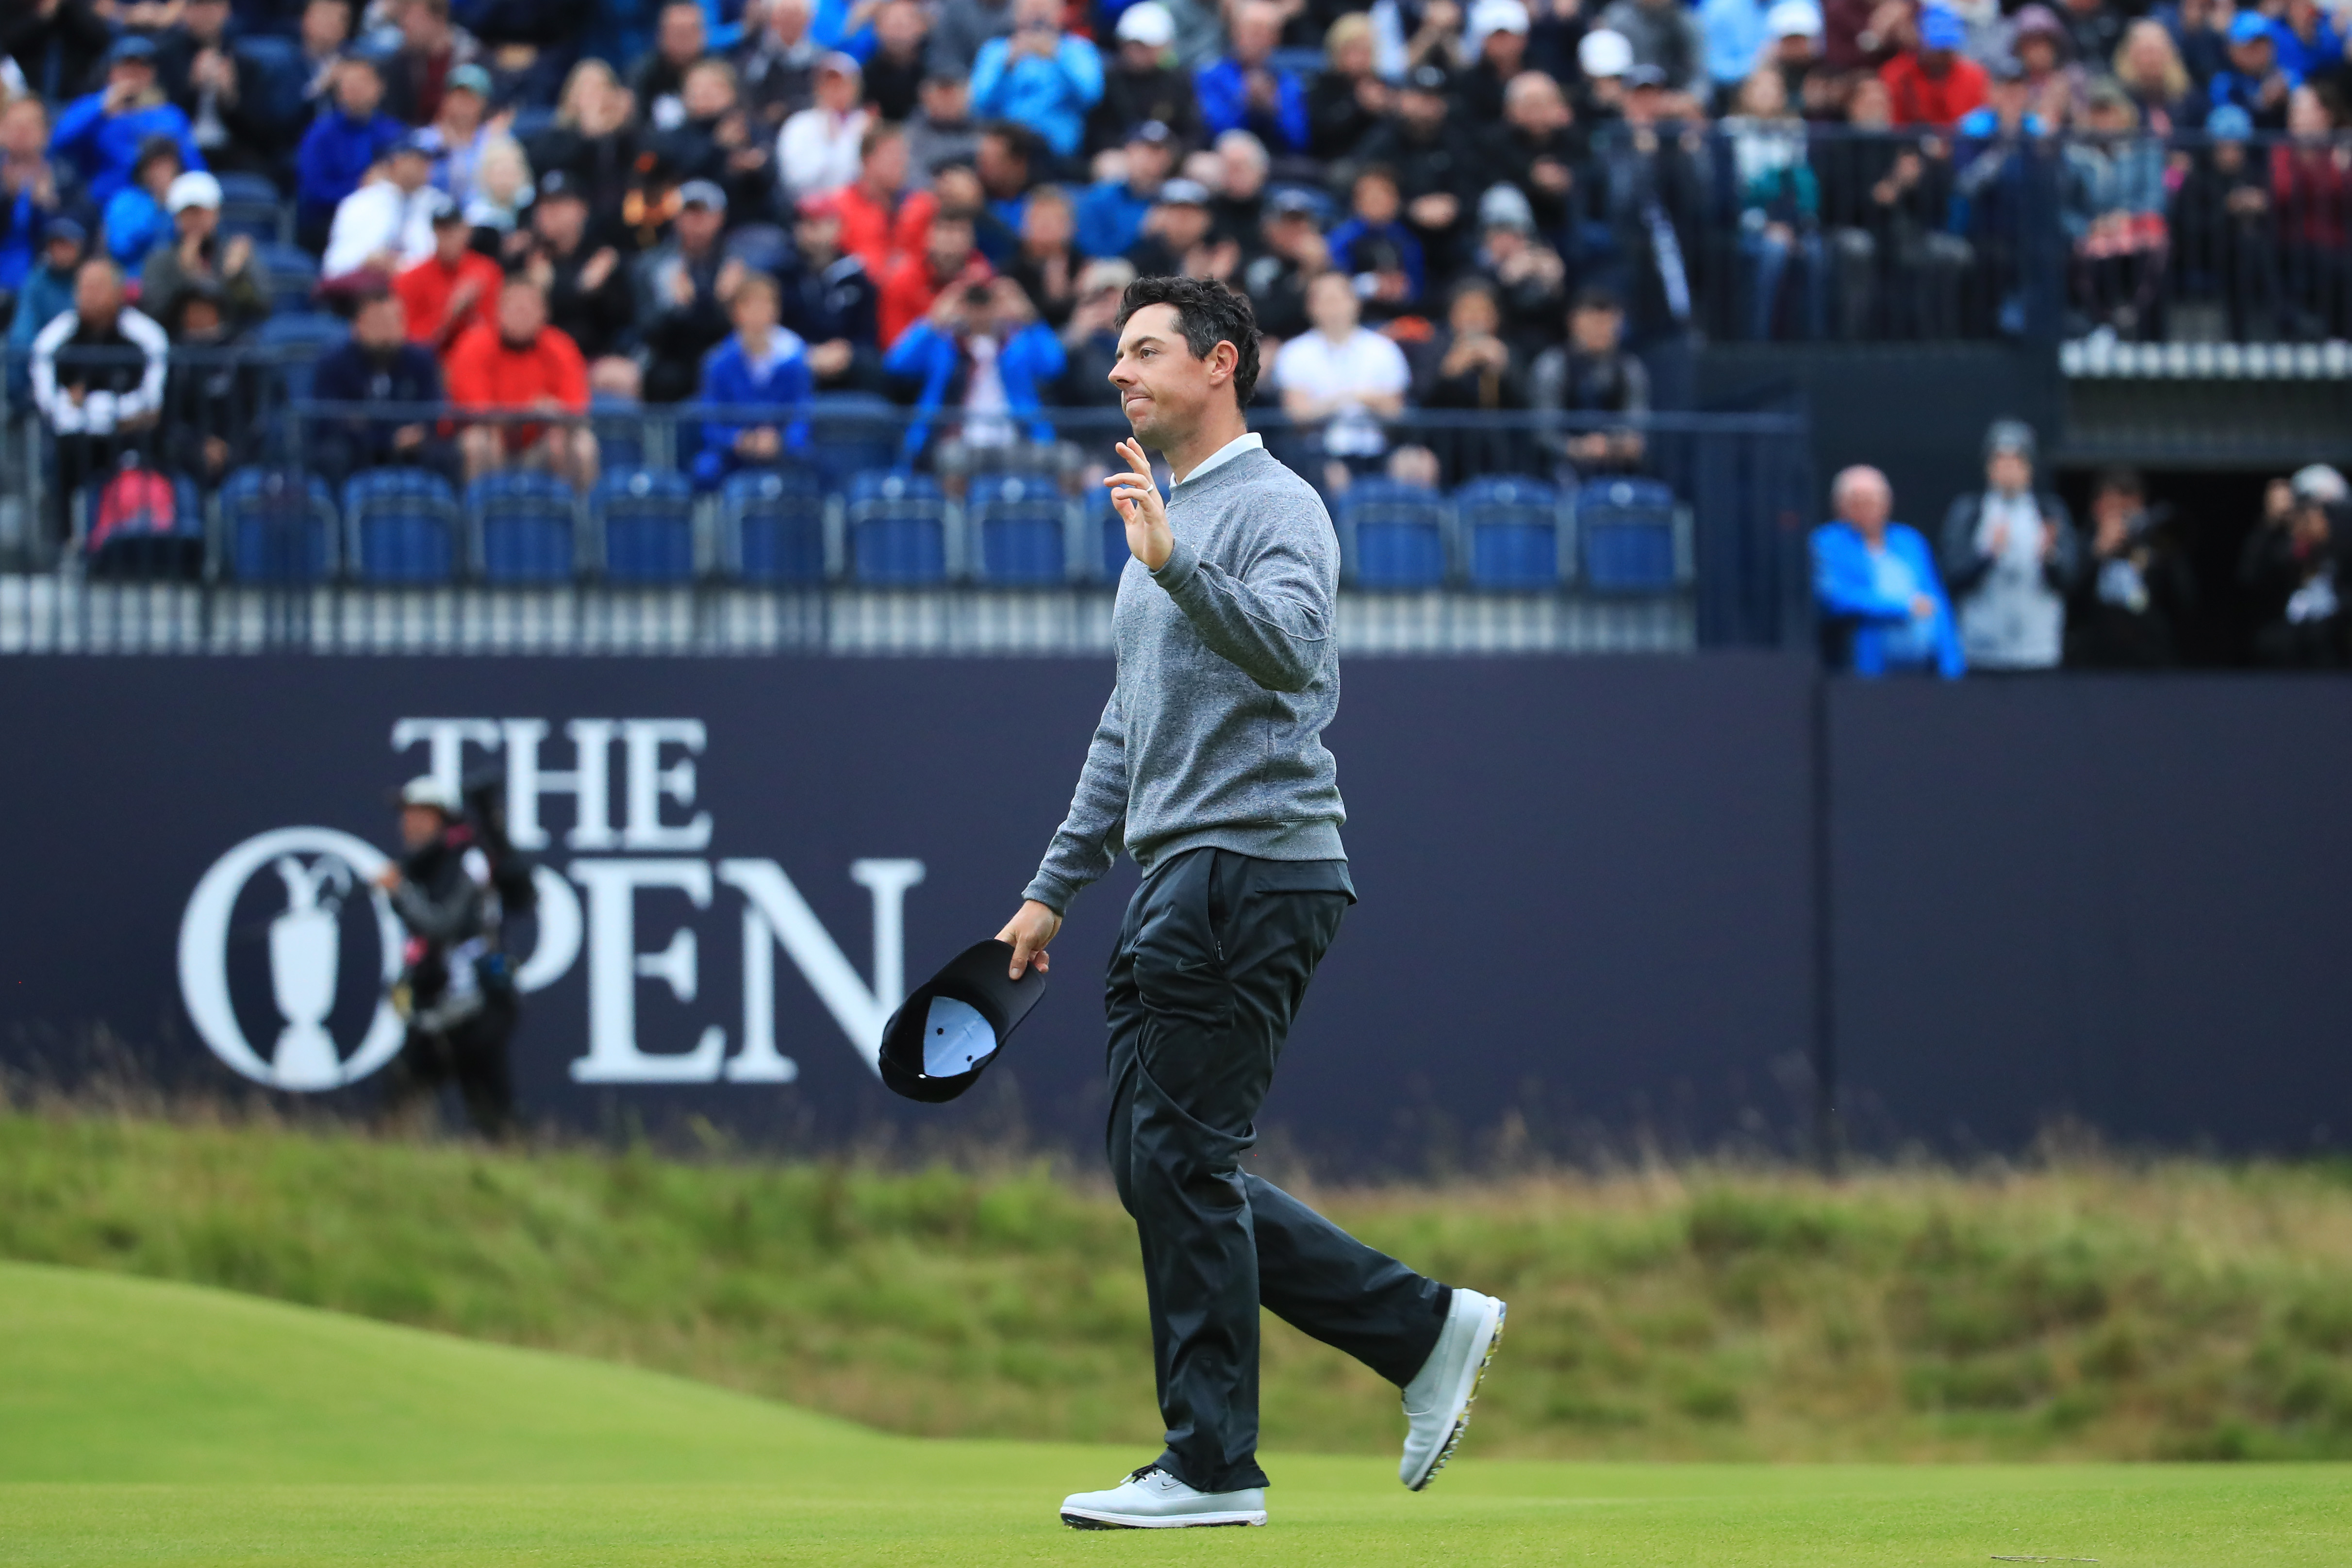 Emotional McIlroy praises 'incredible' support after Open near-miss